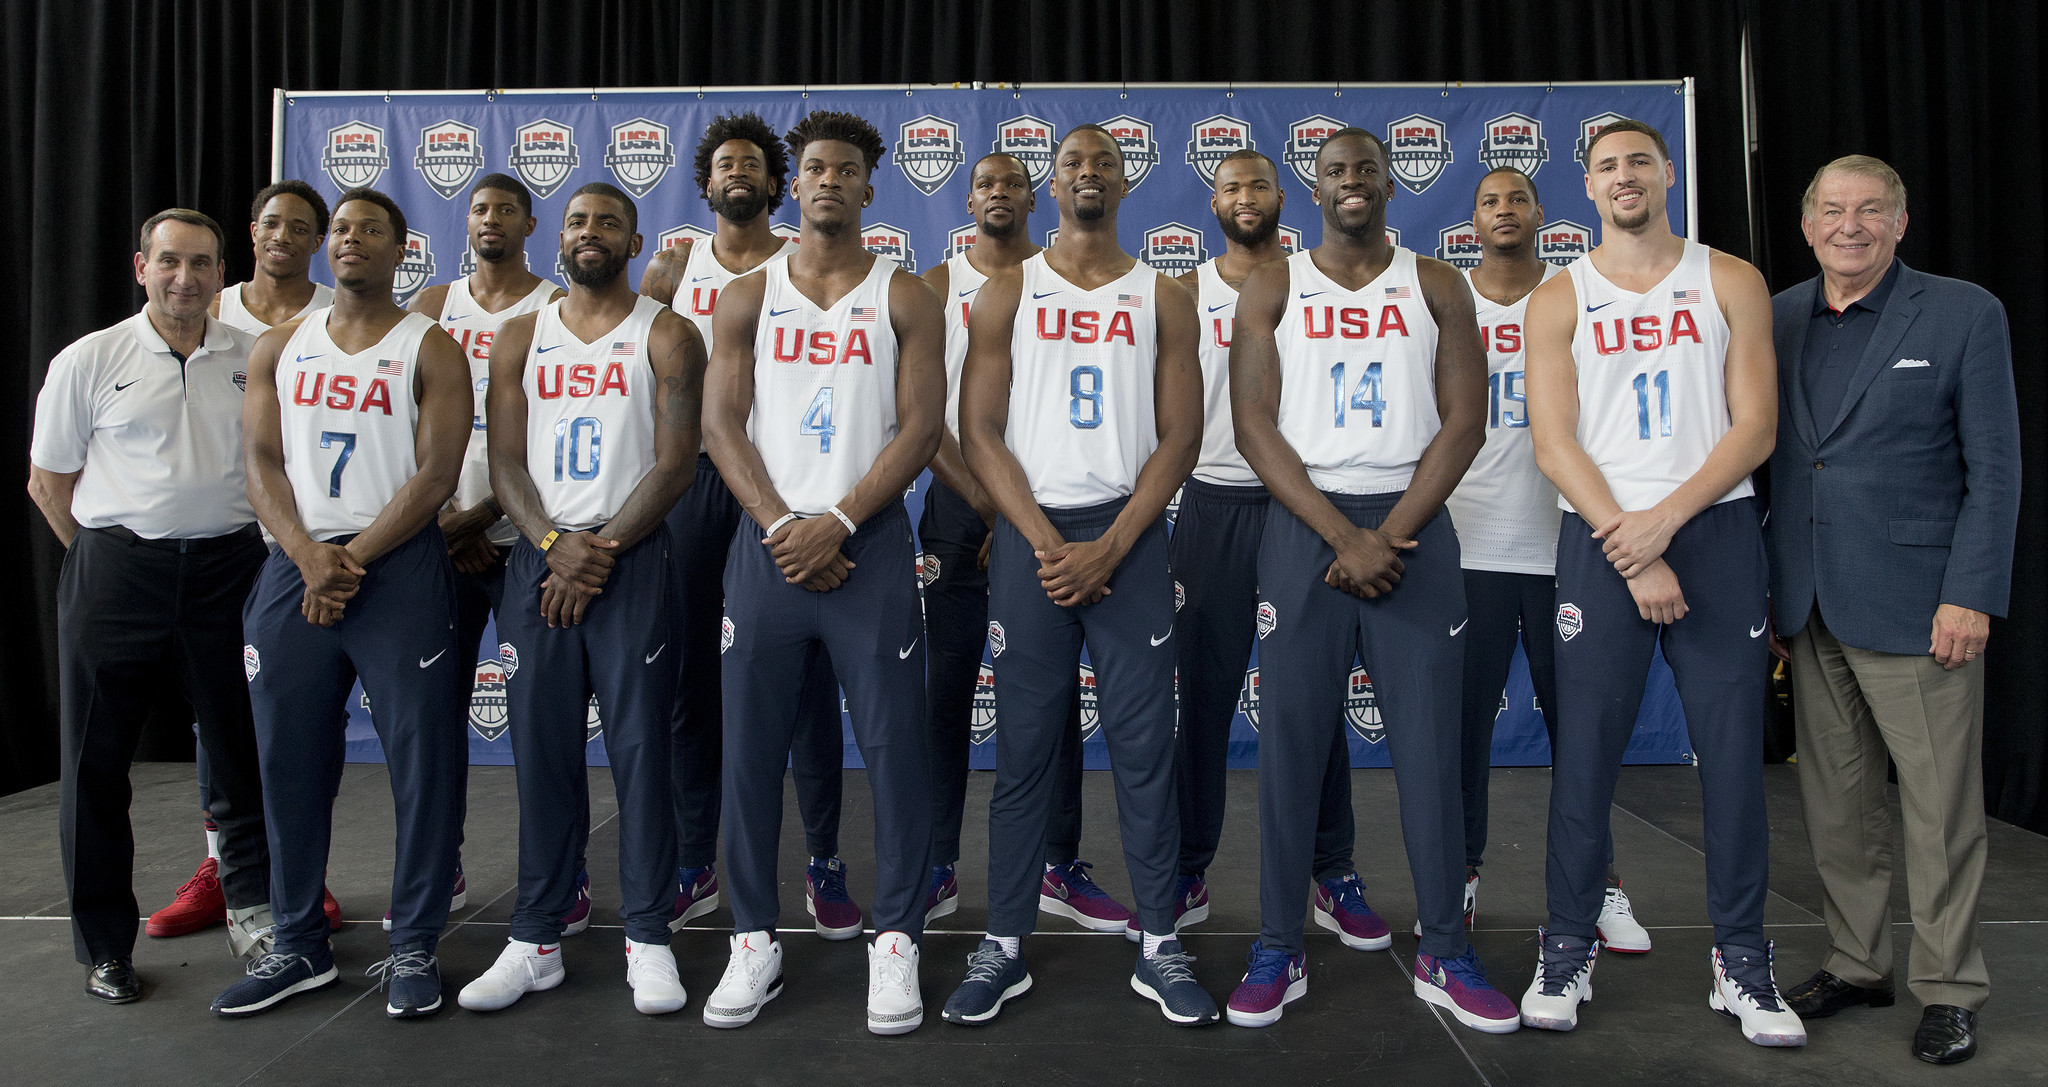 Even if it wins gold, U.S. Olympic basketball team has ...